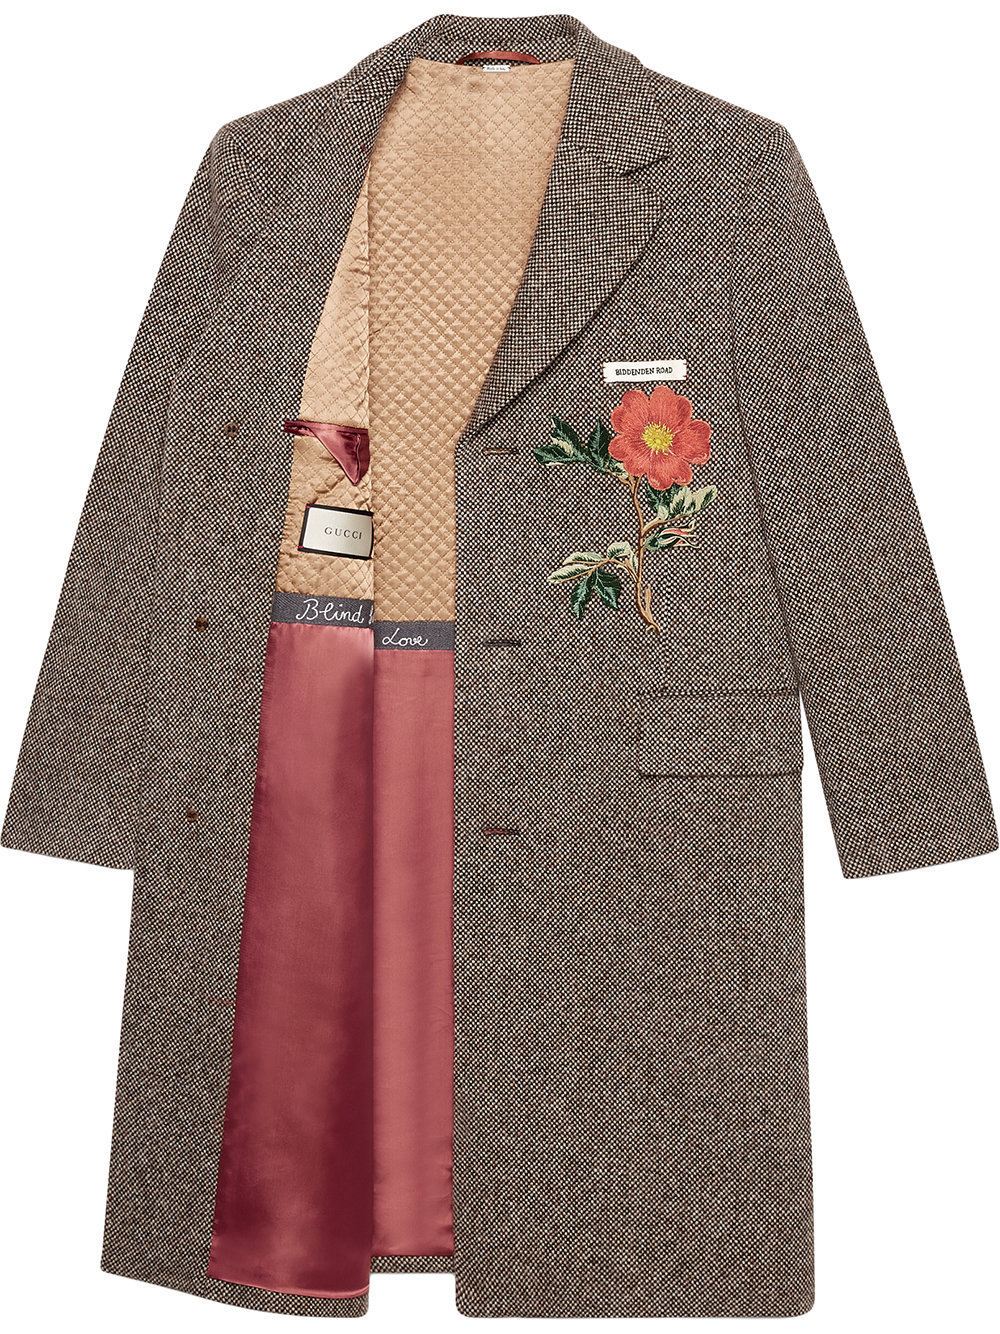 17-18AW WG290 LOOK63 POPPY EMBROIDERED WOOL COAT